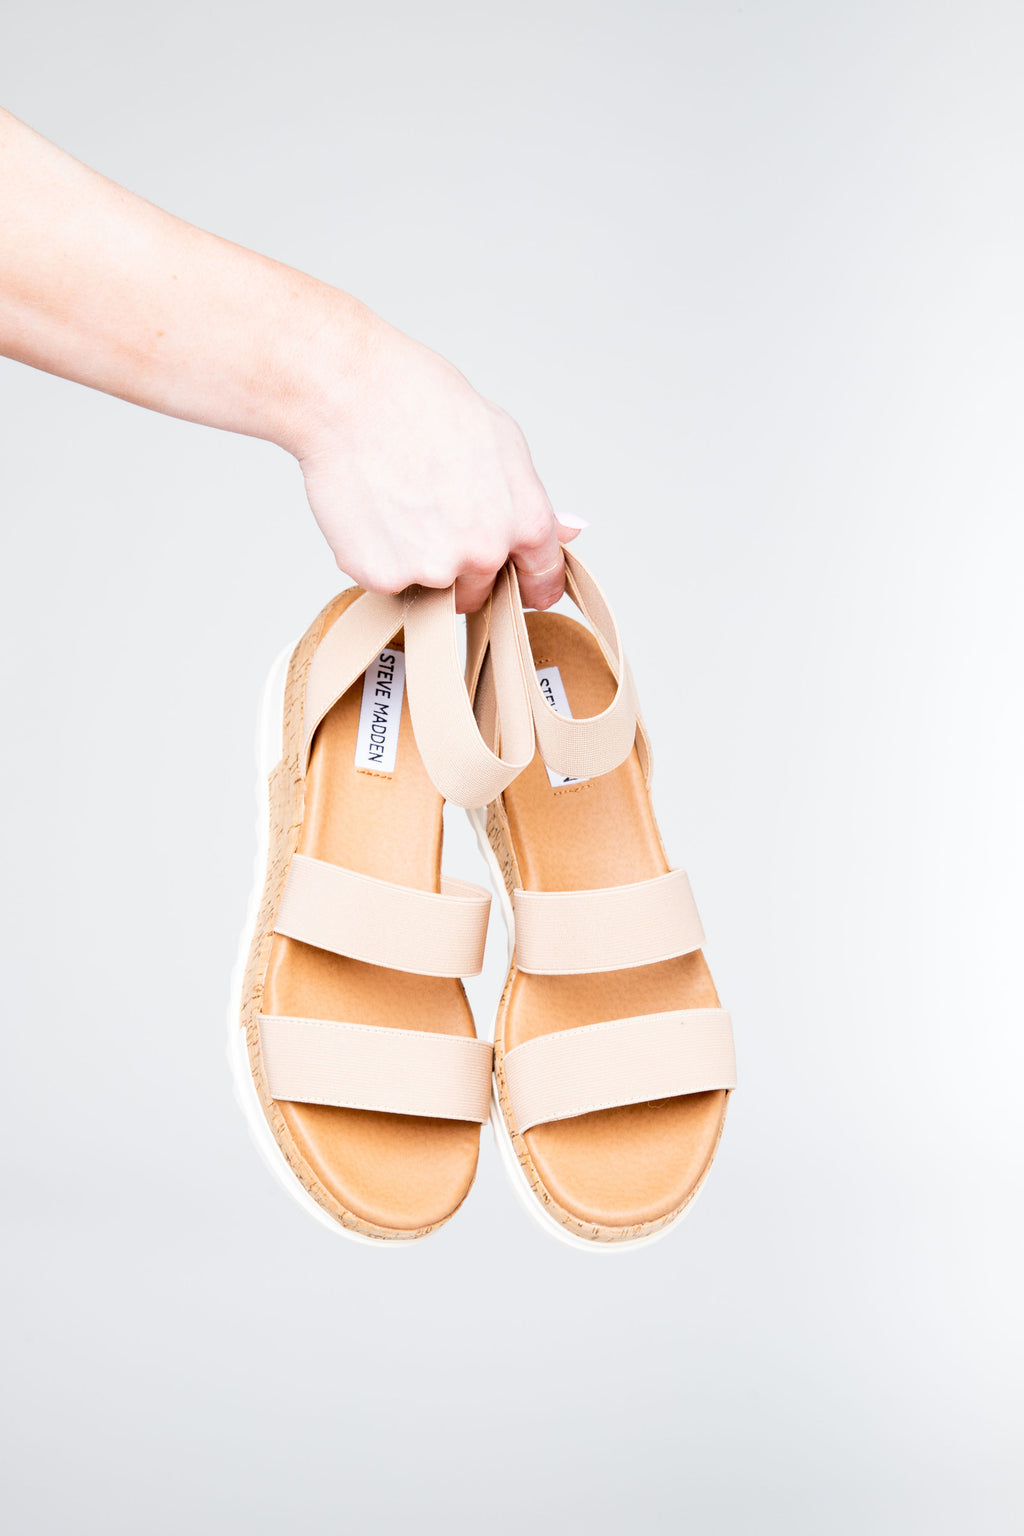 Steve Madden: The Bandi Sandal in Blush, studio shoot; front view